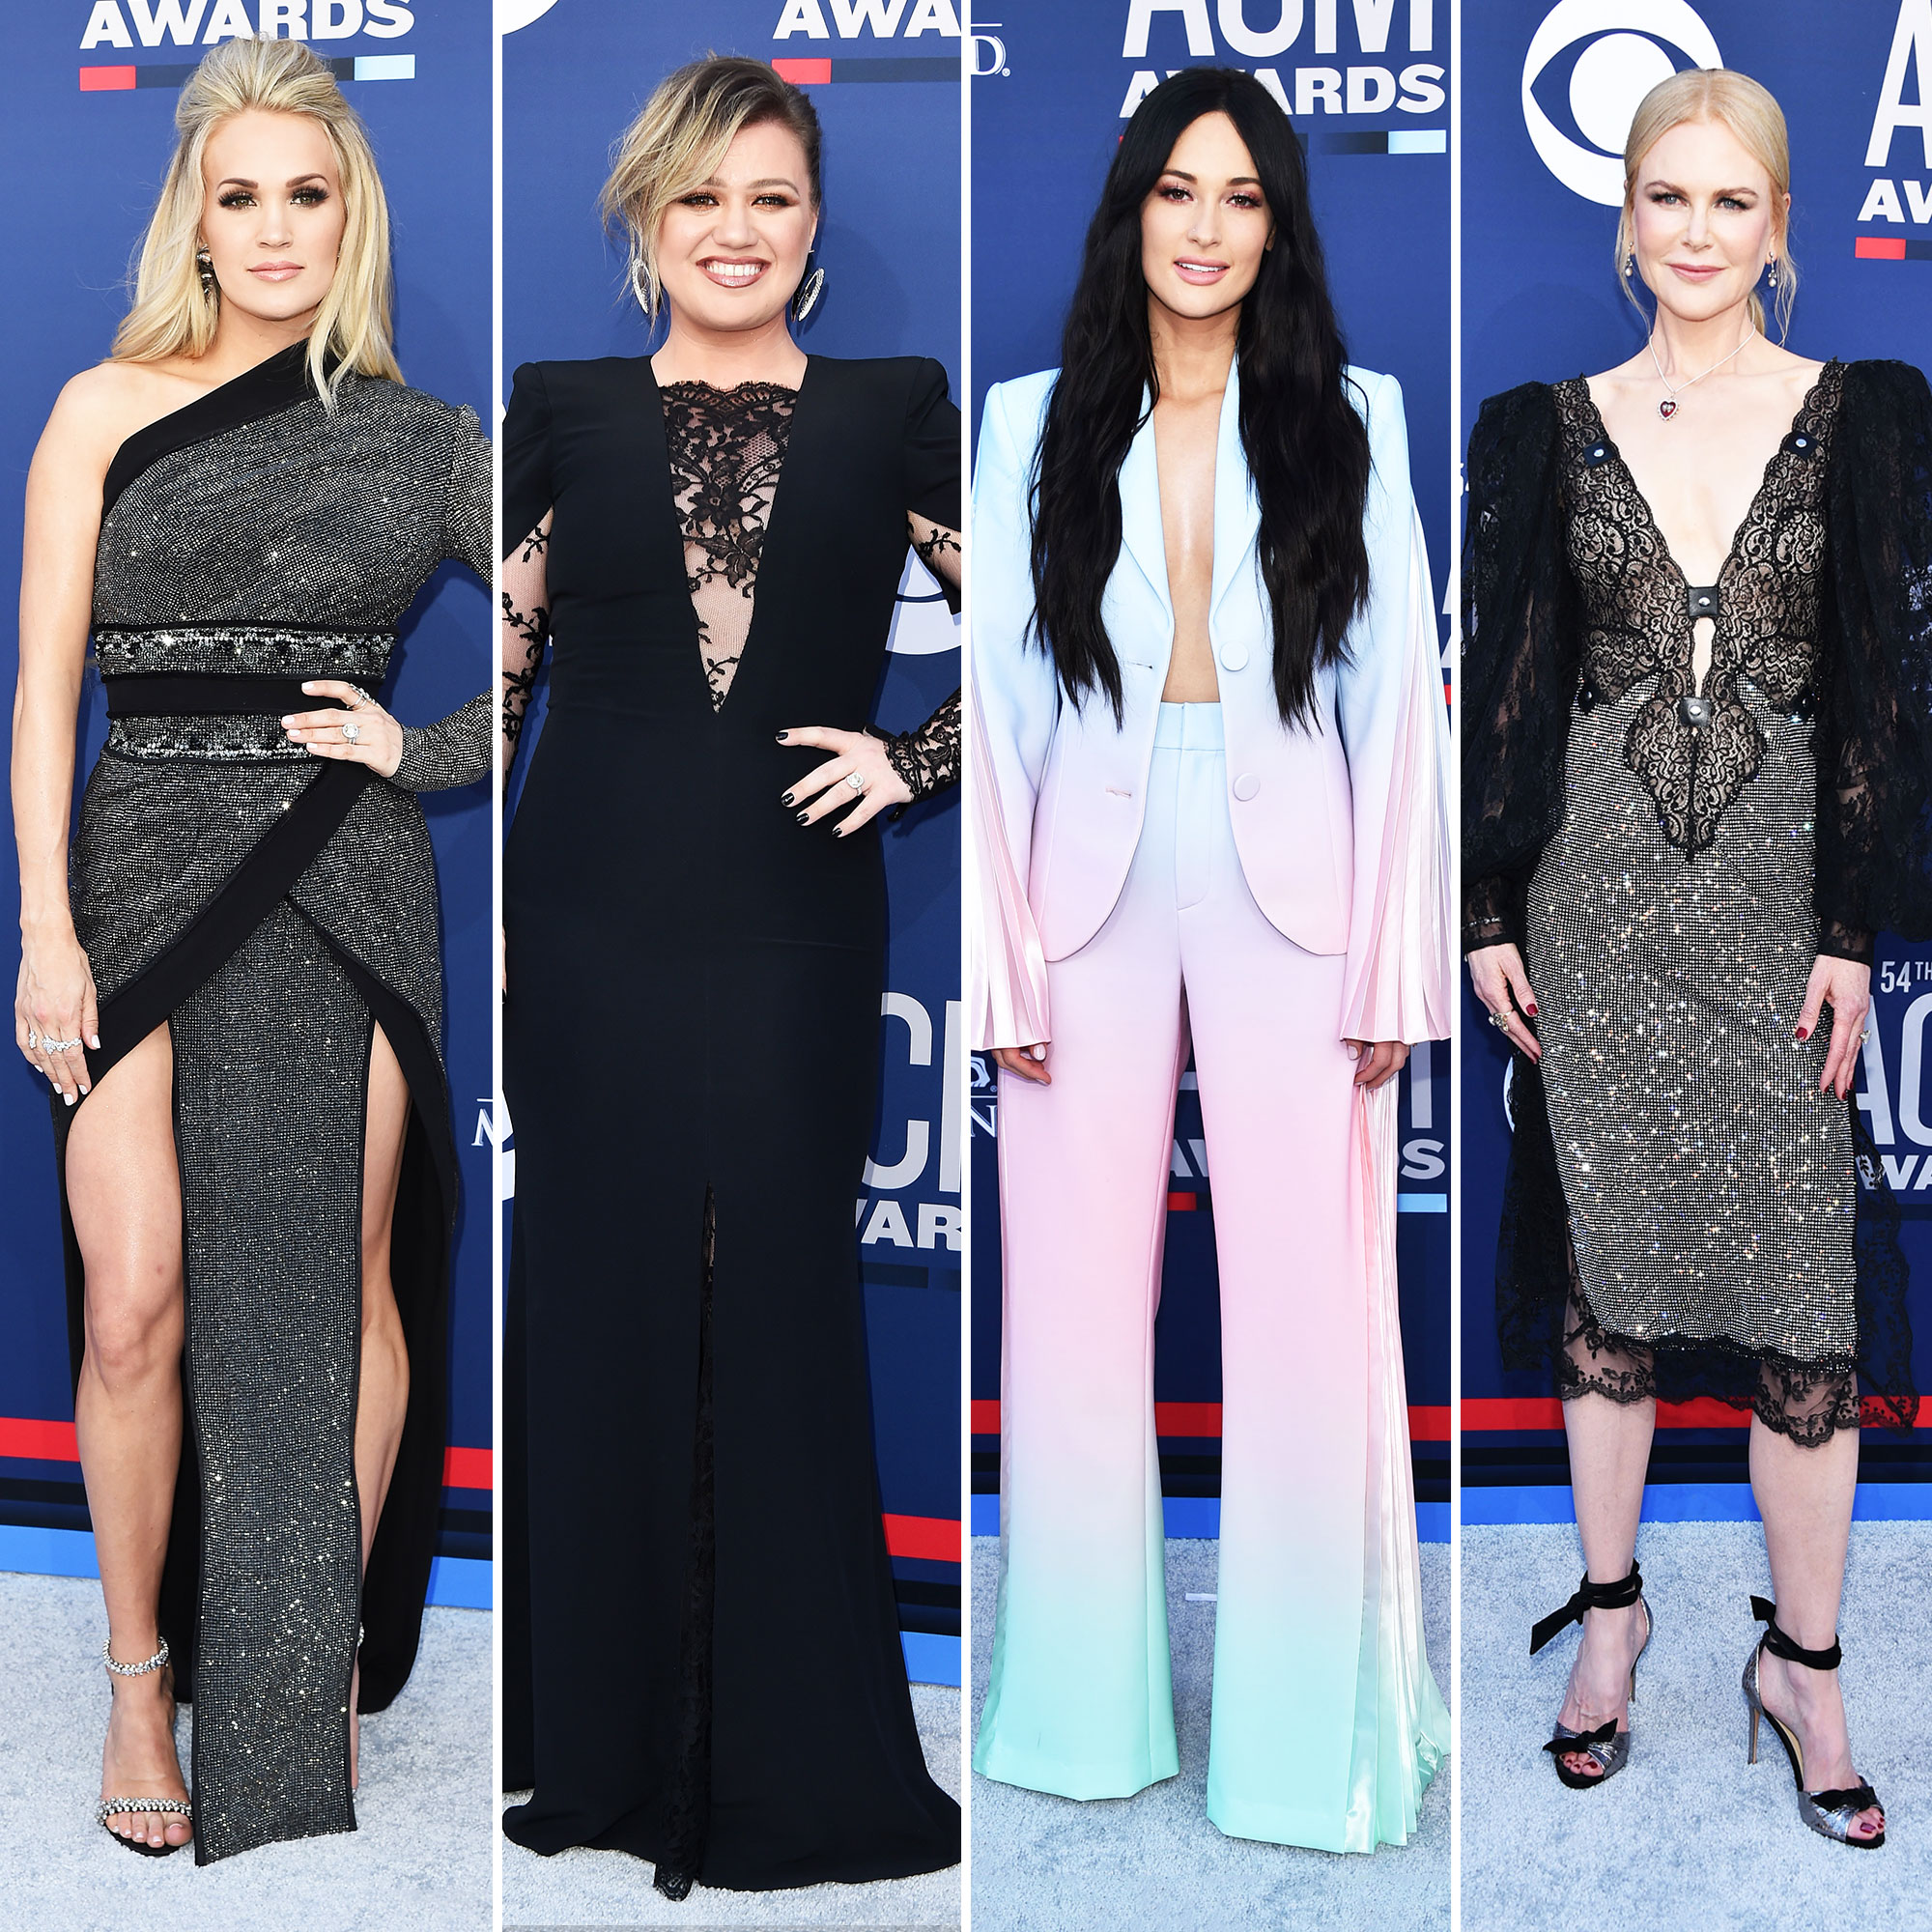 Carrie Underwood, Kelly Clarkson, Kacey Musgraves and Nicole KidmanThe Best Looks From the Country Music Awards Red Carpet - Carrie Underwood, Kelly Clarkson, Kacey Musgraves and Nicole Kidman